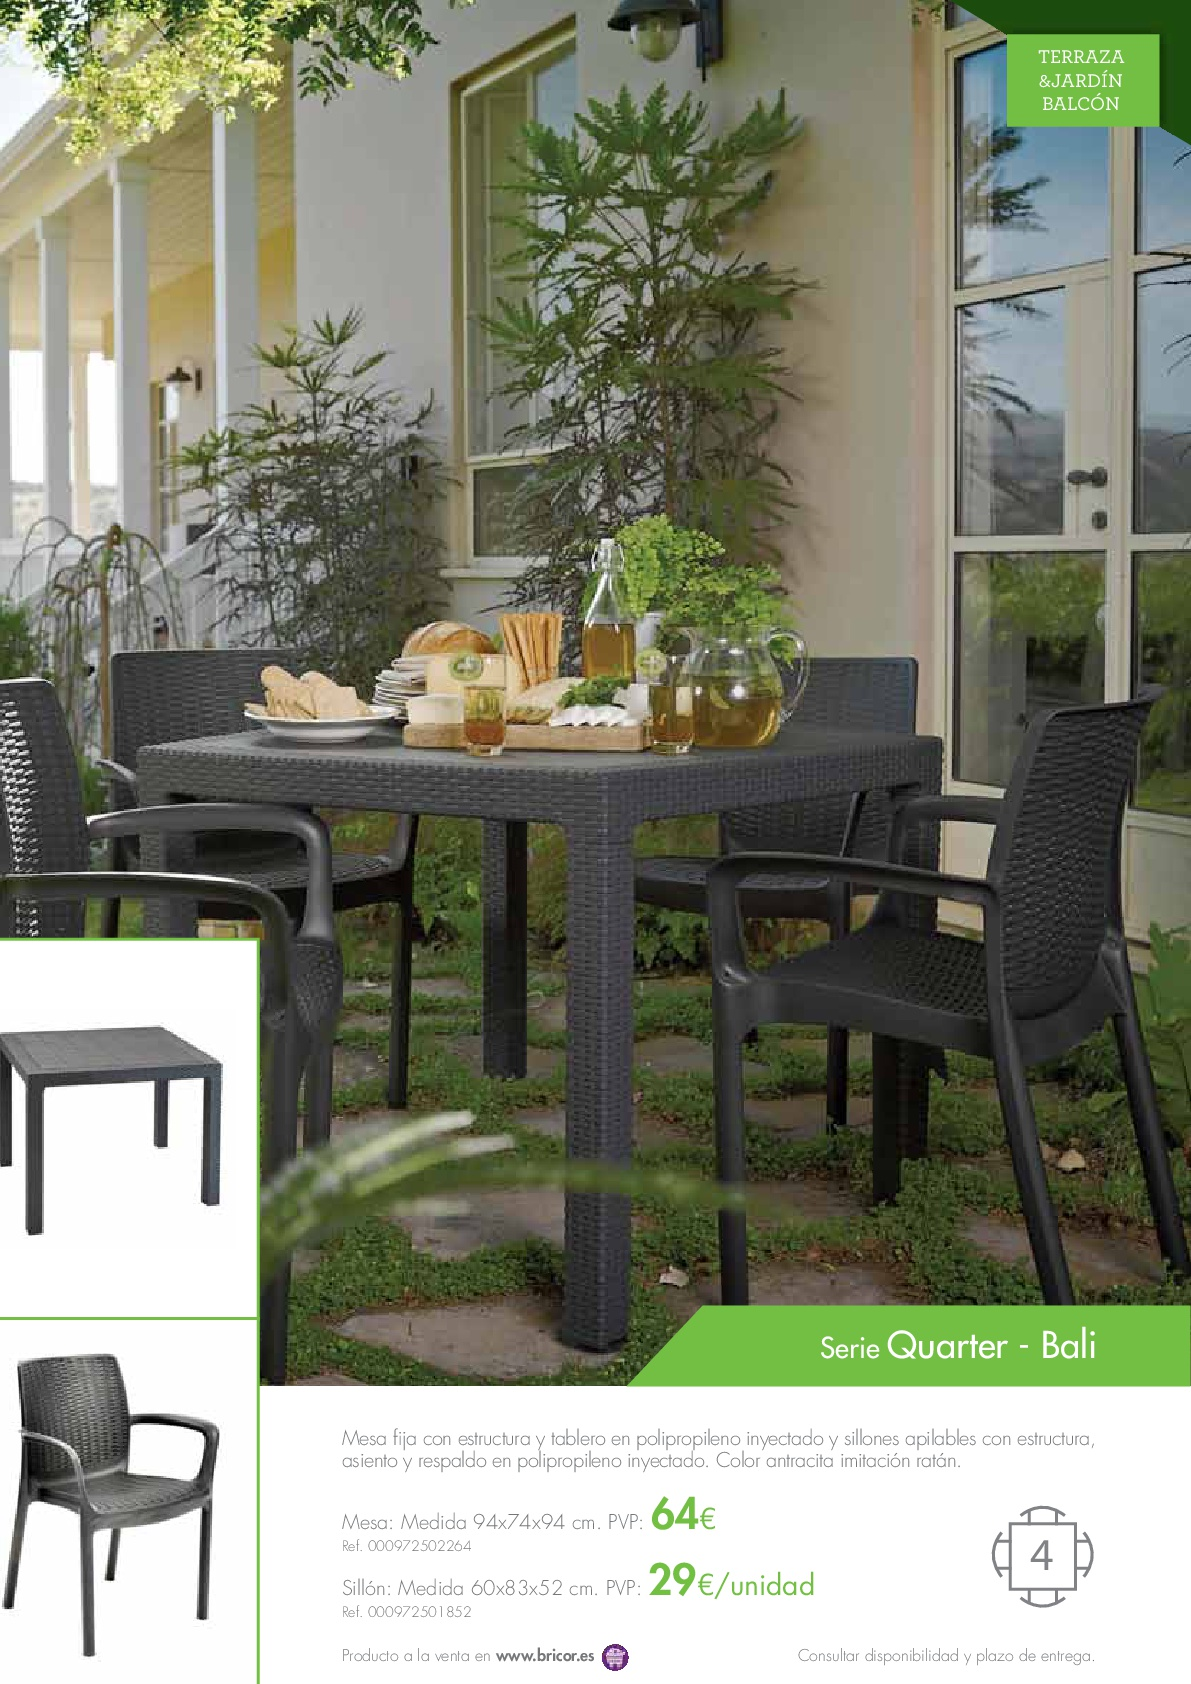 Bricor muebles jardin 201619 revista muebles for Revista jardin 2016